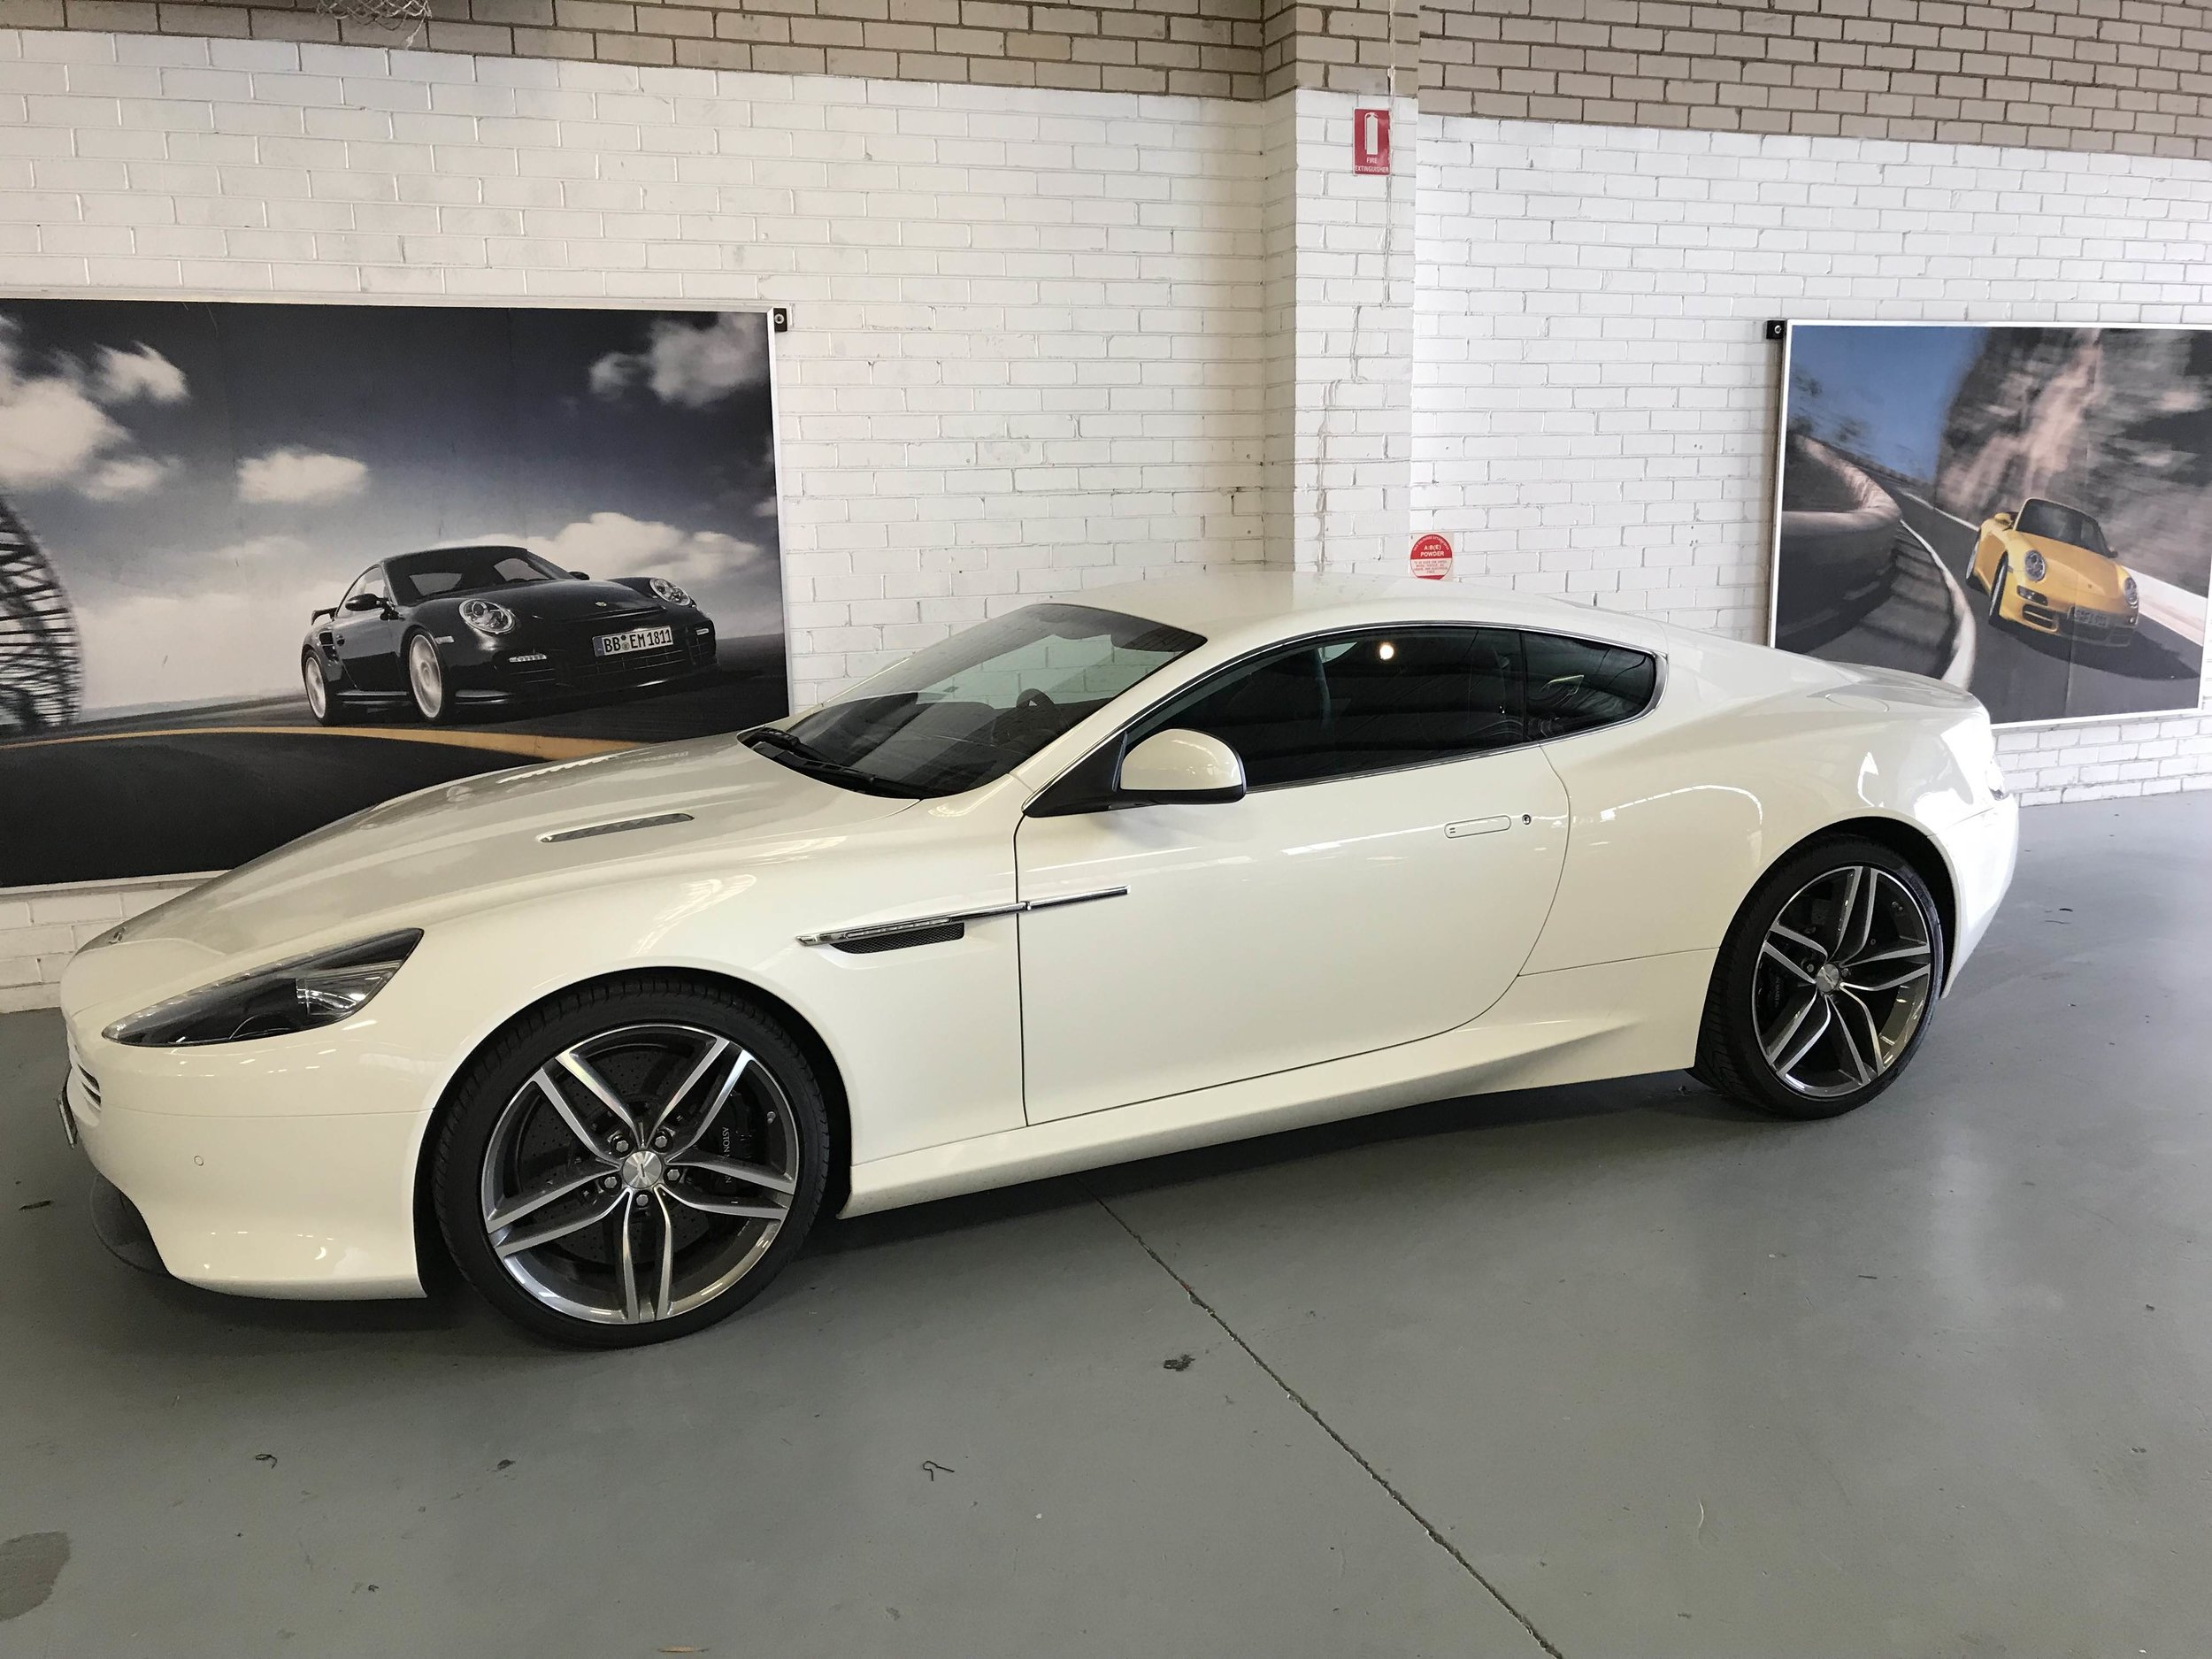 The simply gorgeous Aston Martin Virage